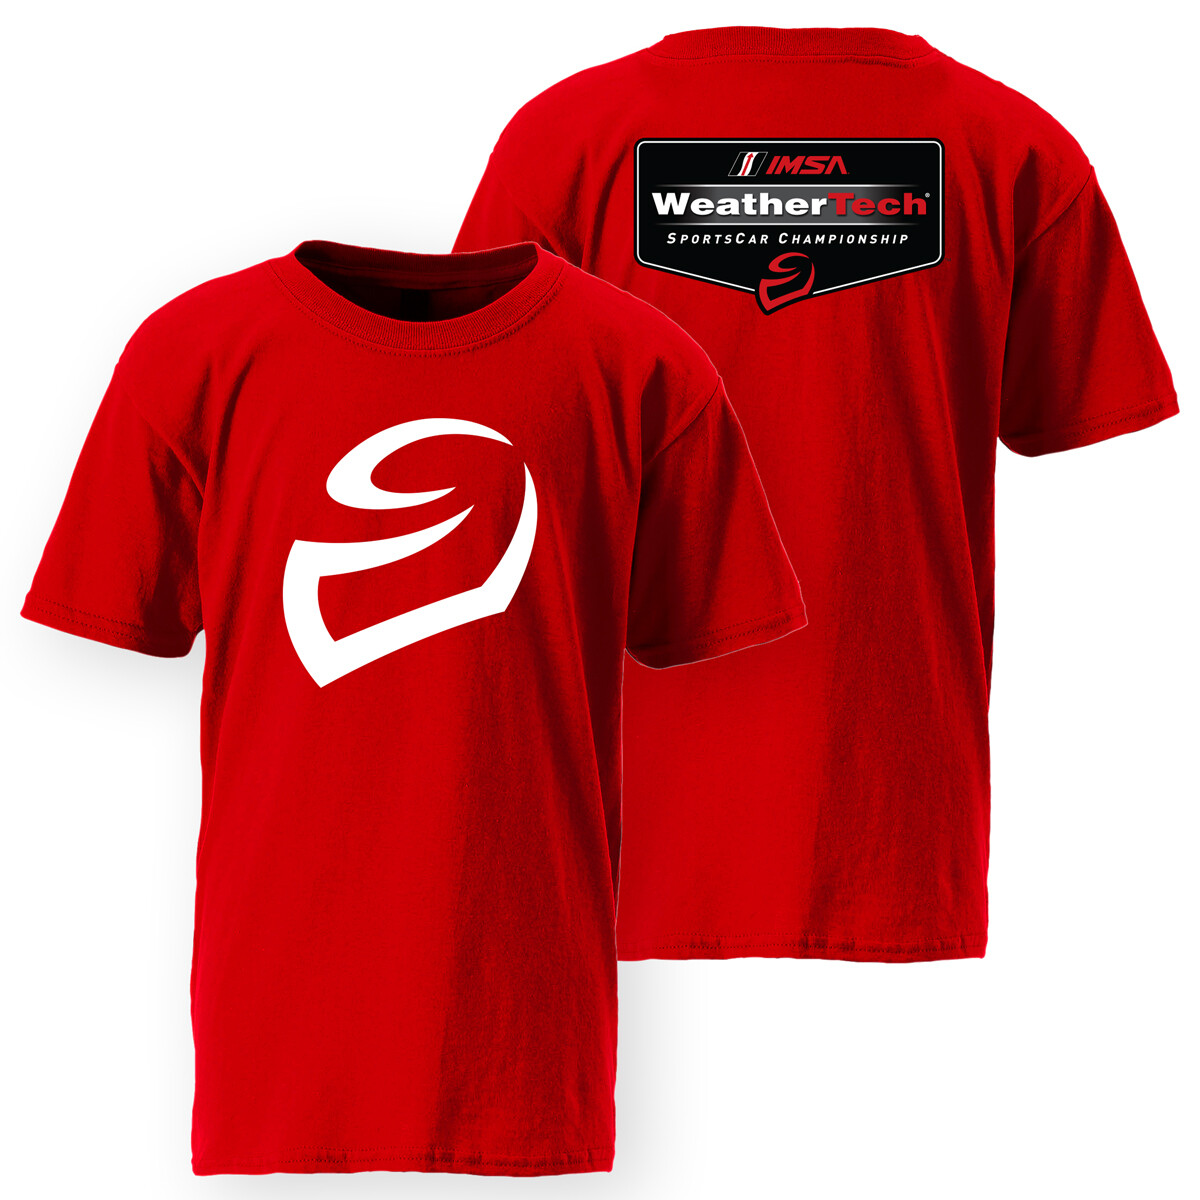 WeatherTech Youth Tee - Red